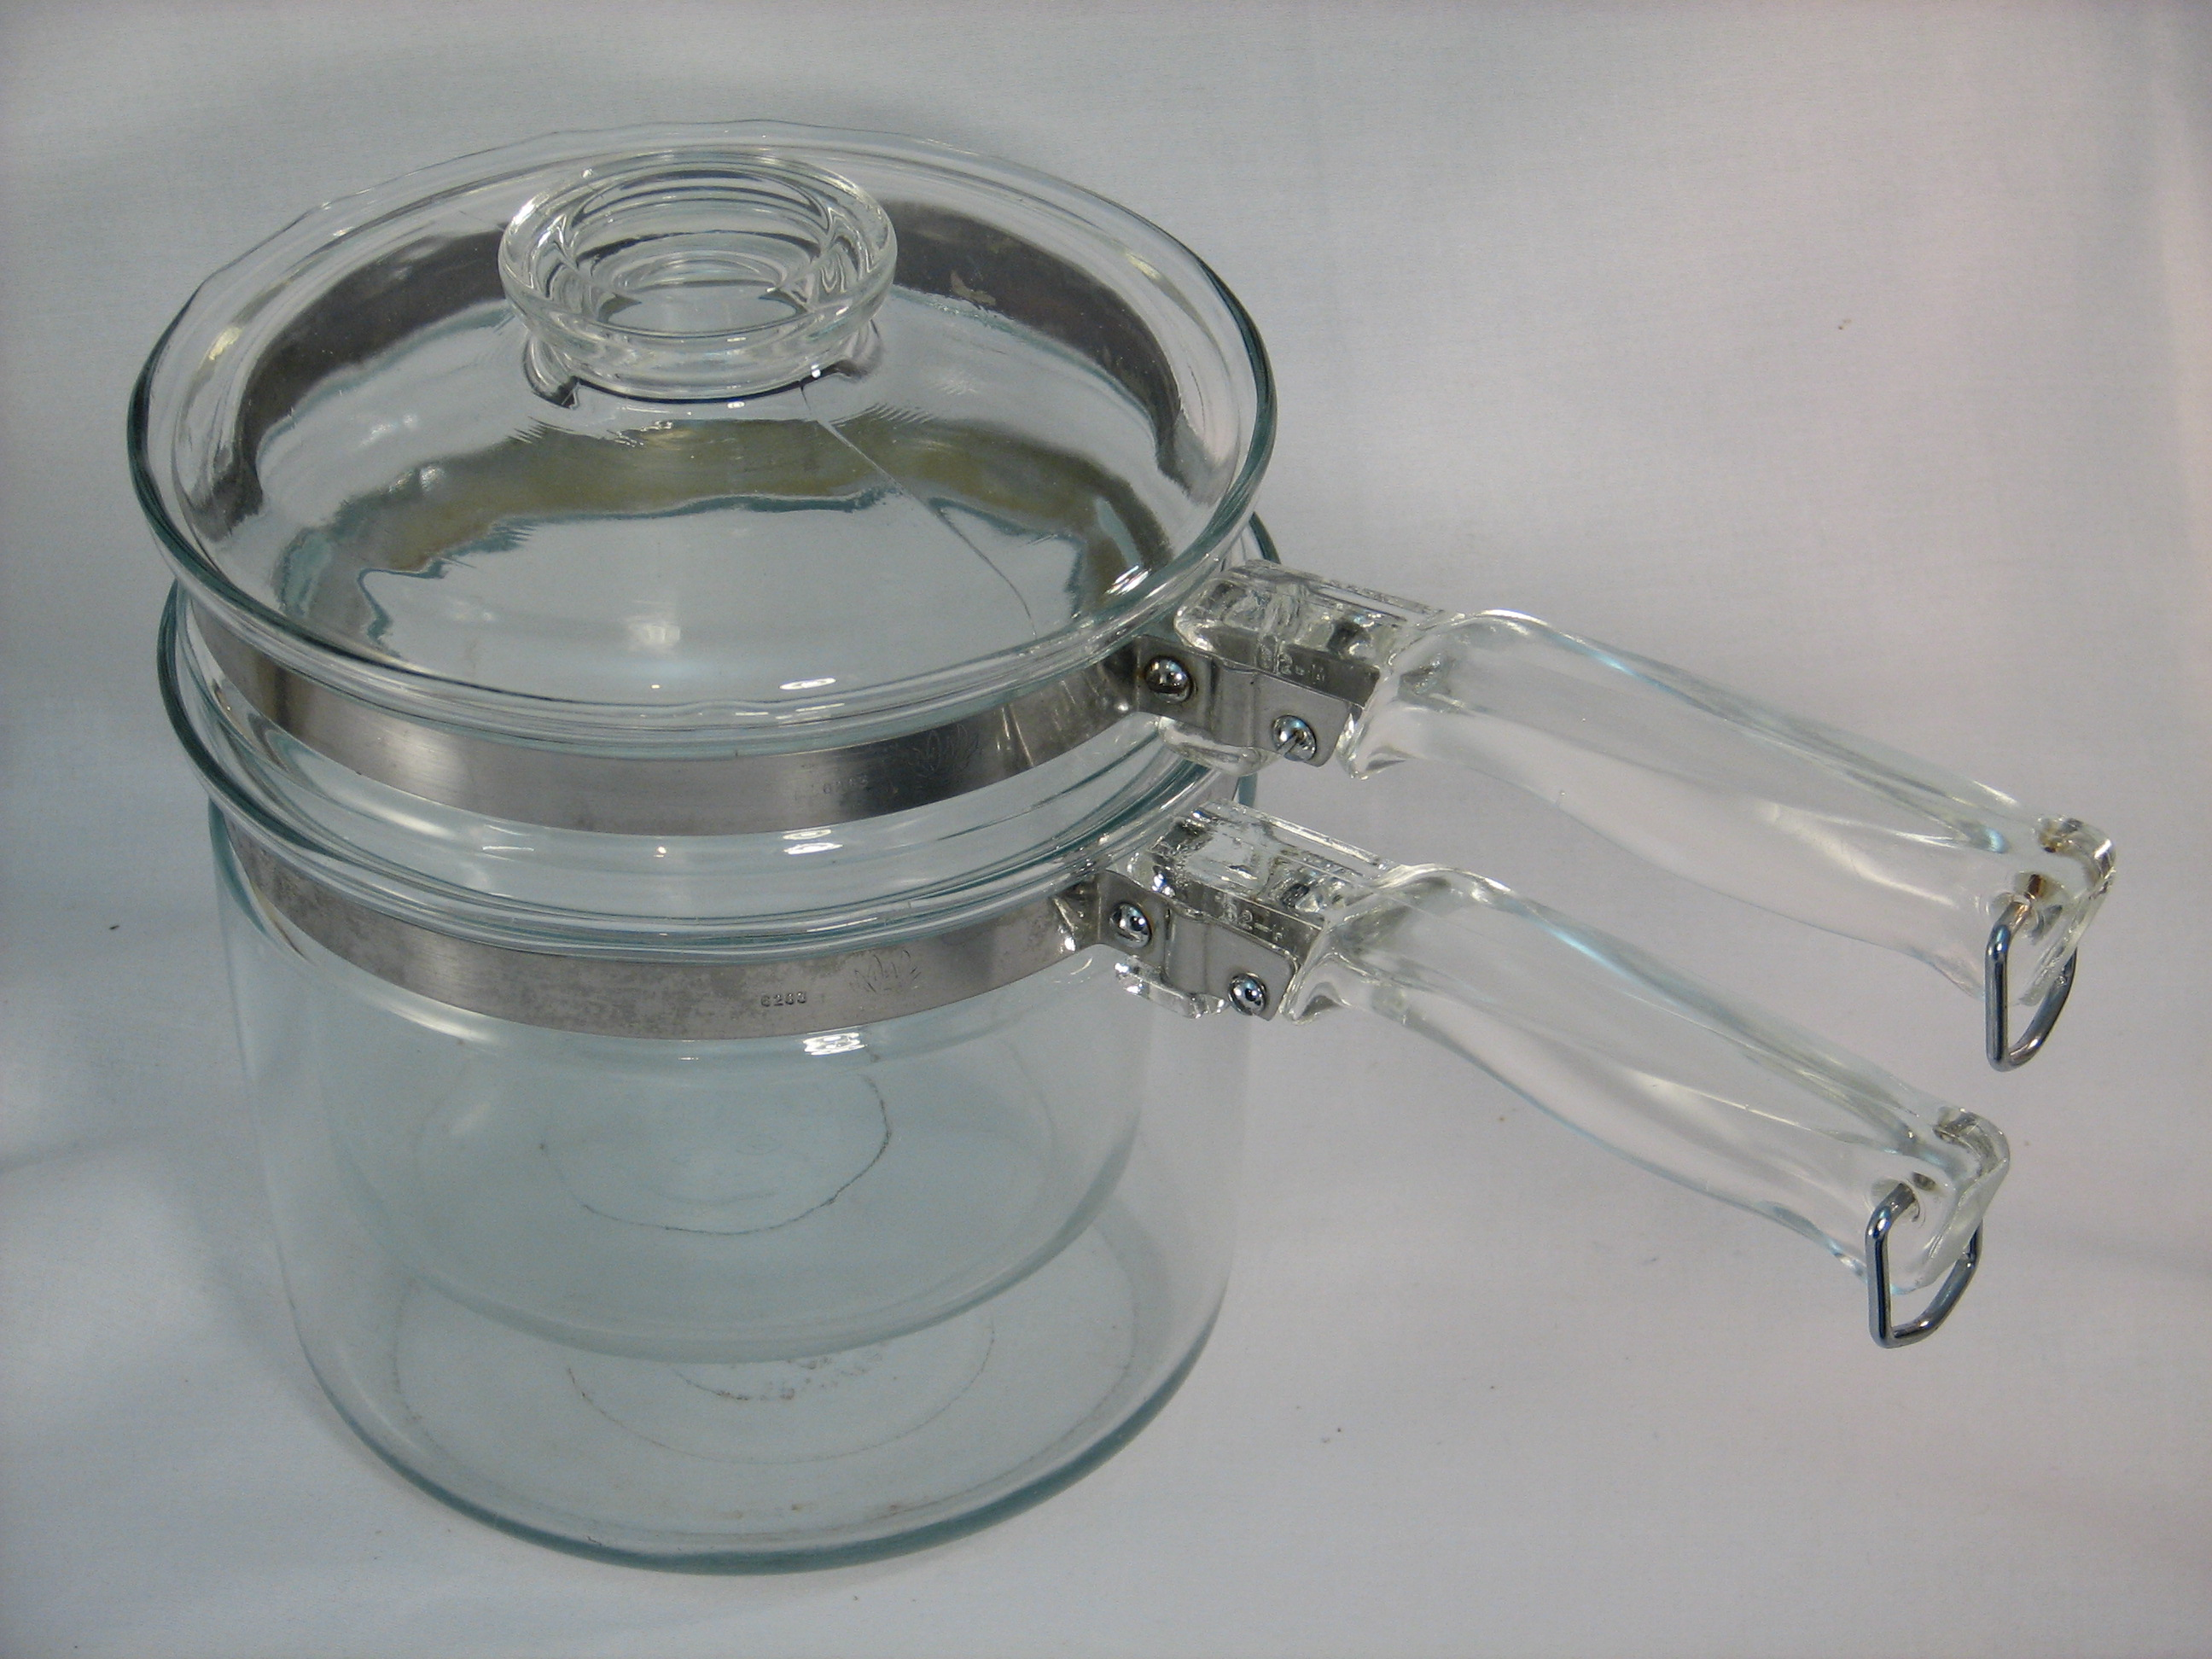 Vintage Pyrex glass double boiler